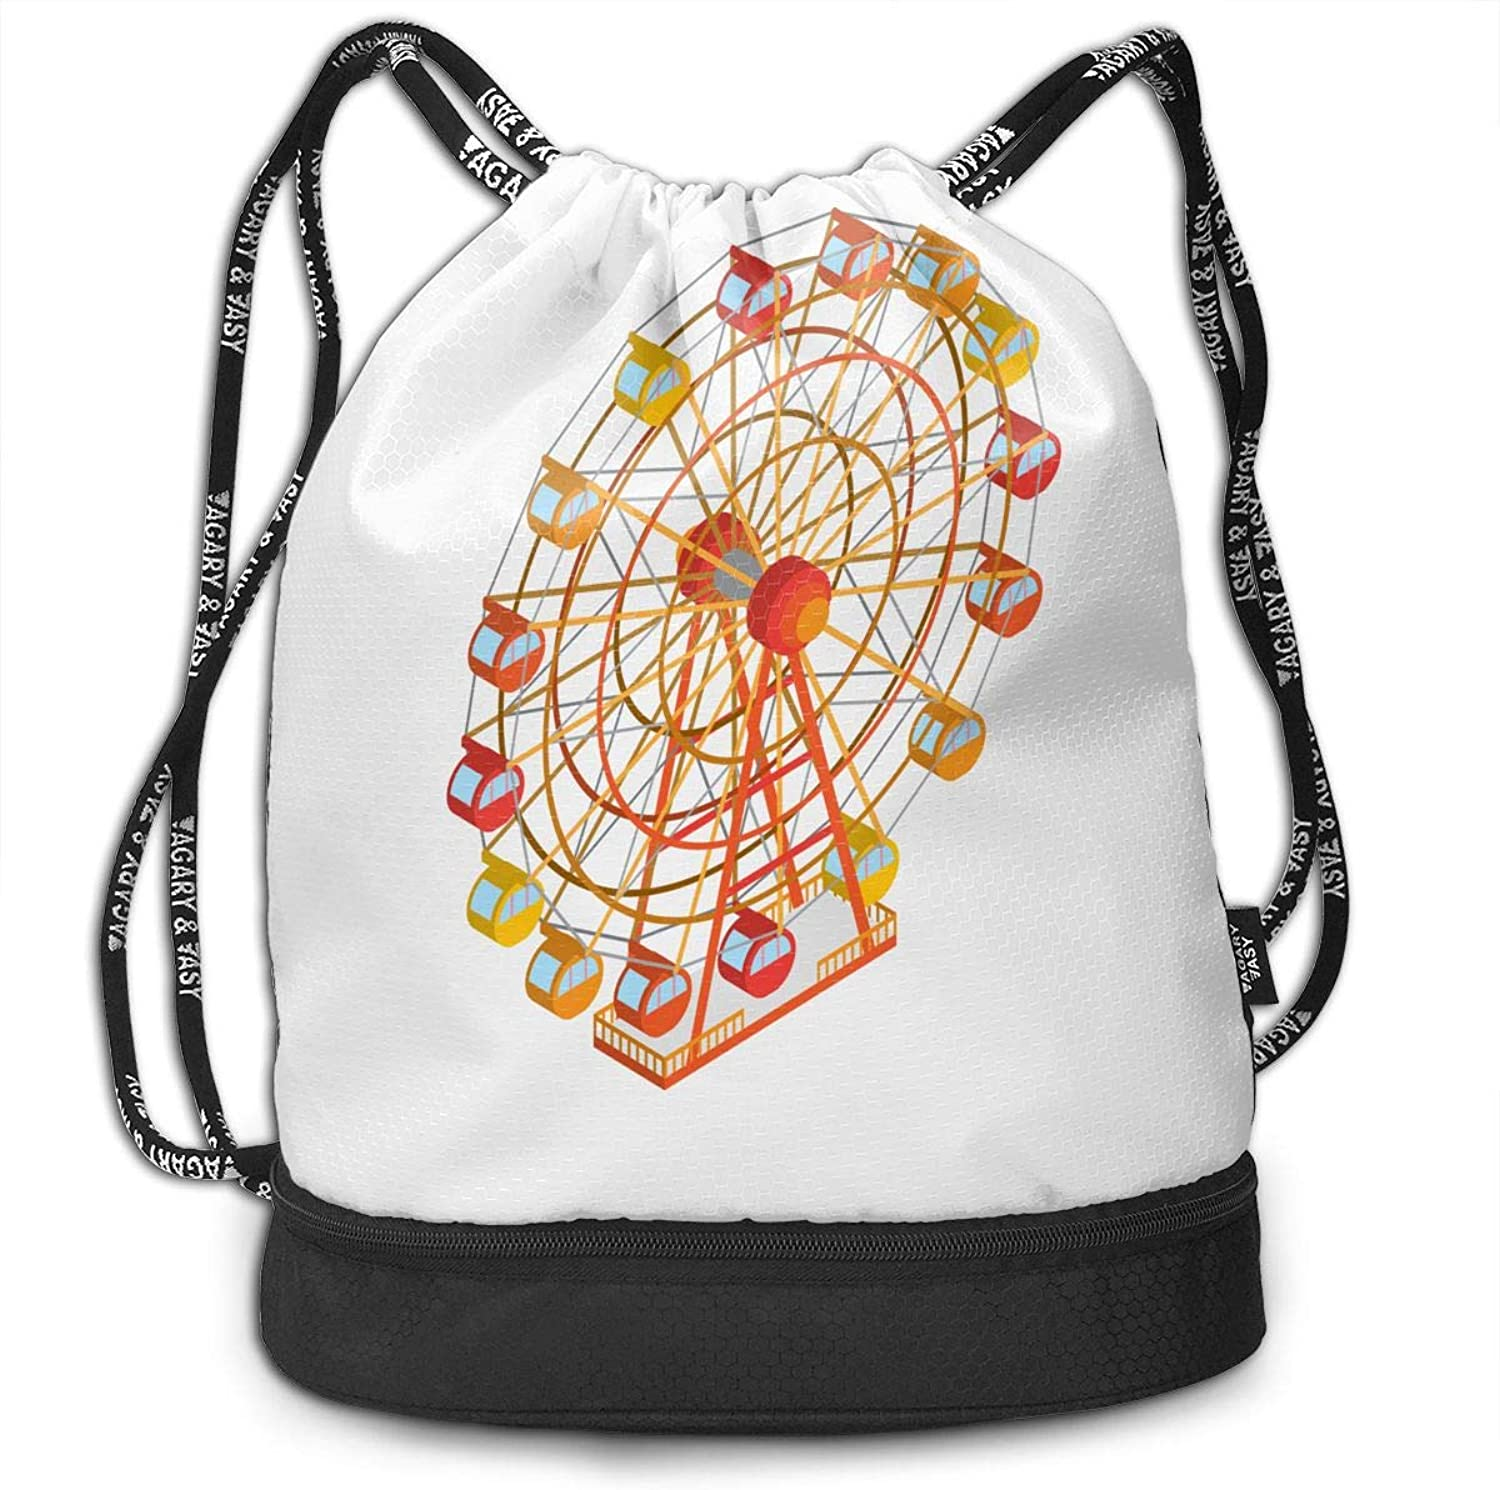 Gymsack Ferris Wheel Print Drawstring Bags  Simple Hiking Sack